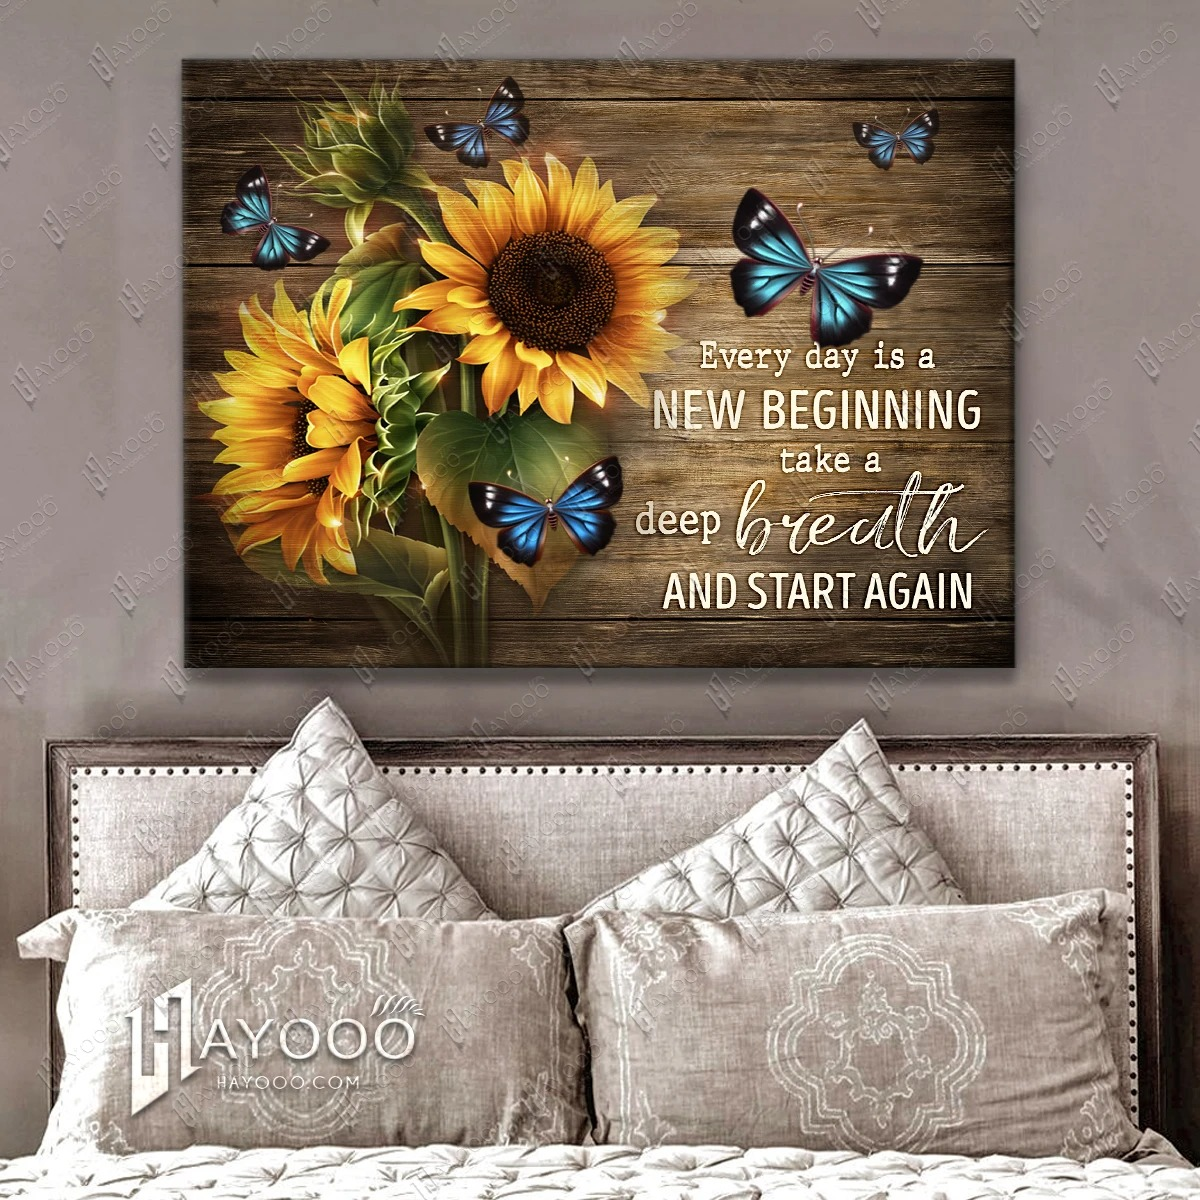 Sunflower and butterfly Everyday is a new beginning take a deep breath smile and start again gallery wrapped canvas 4